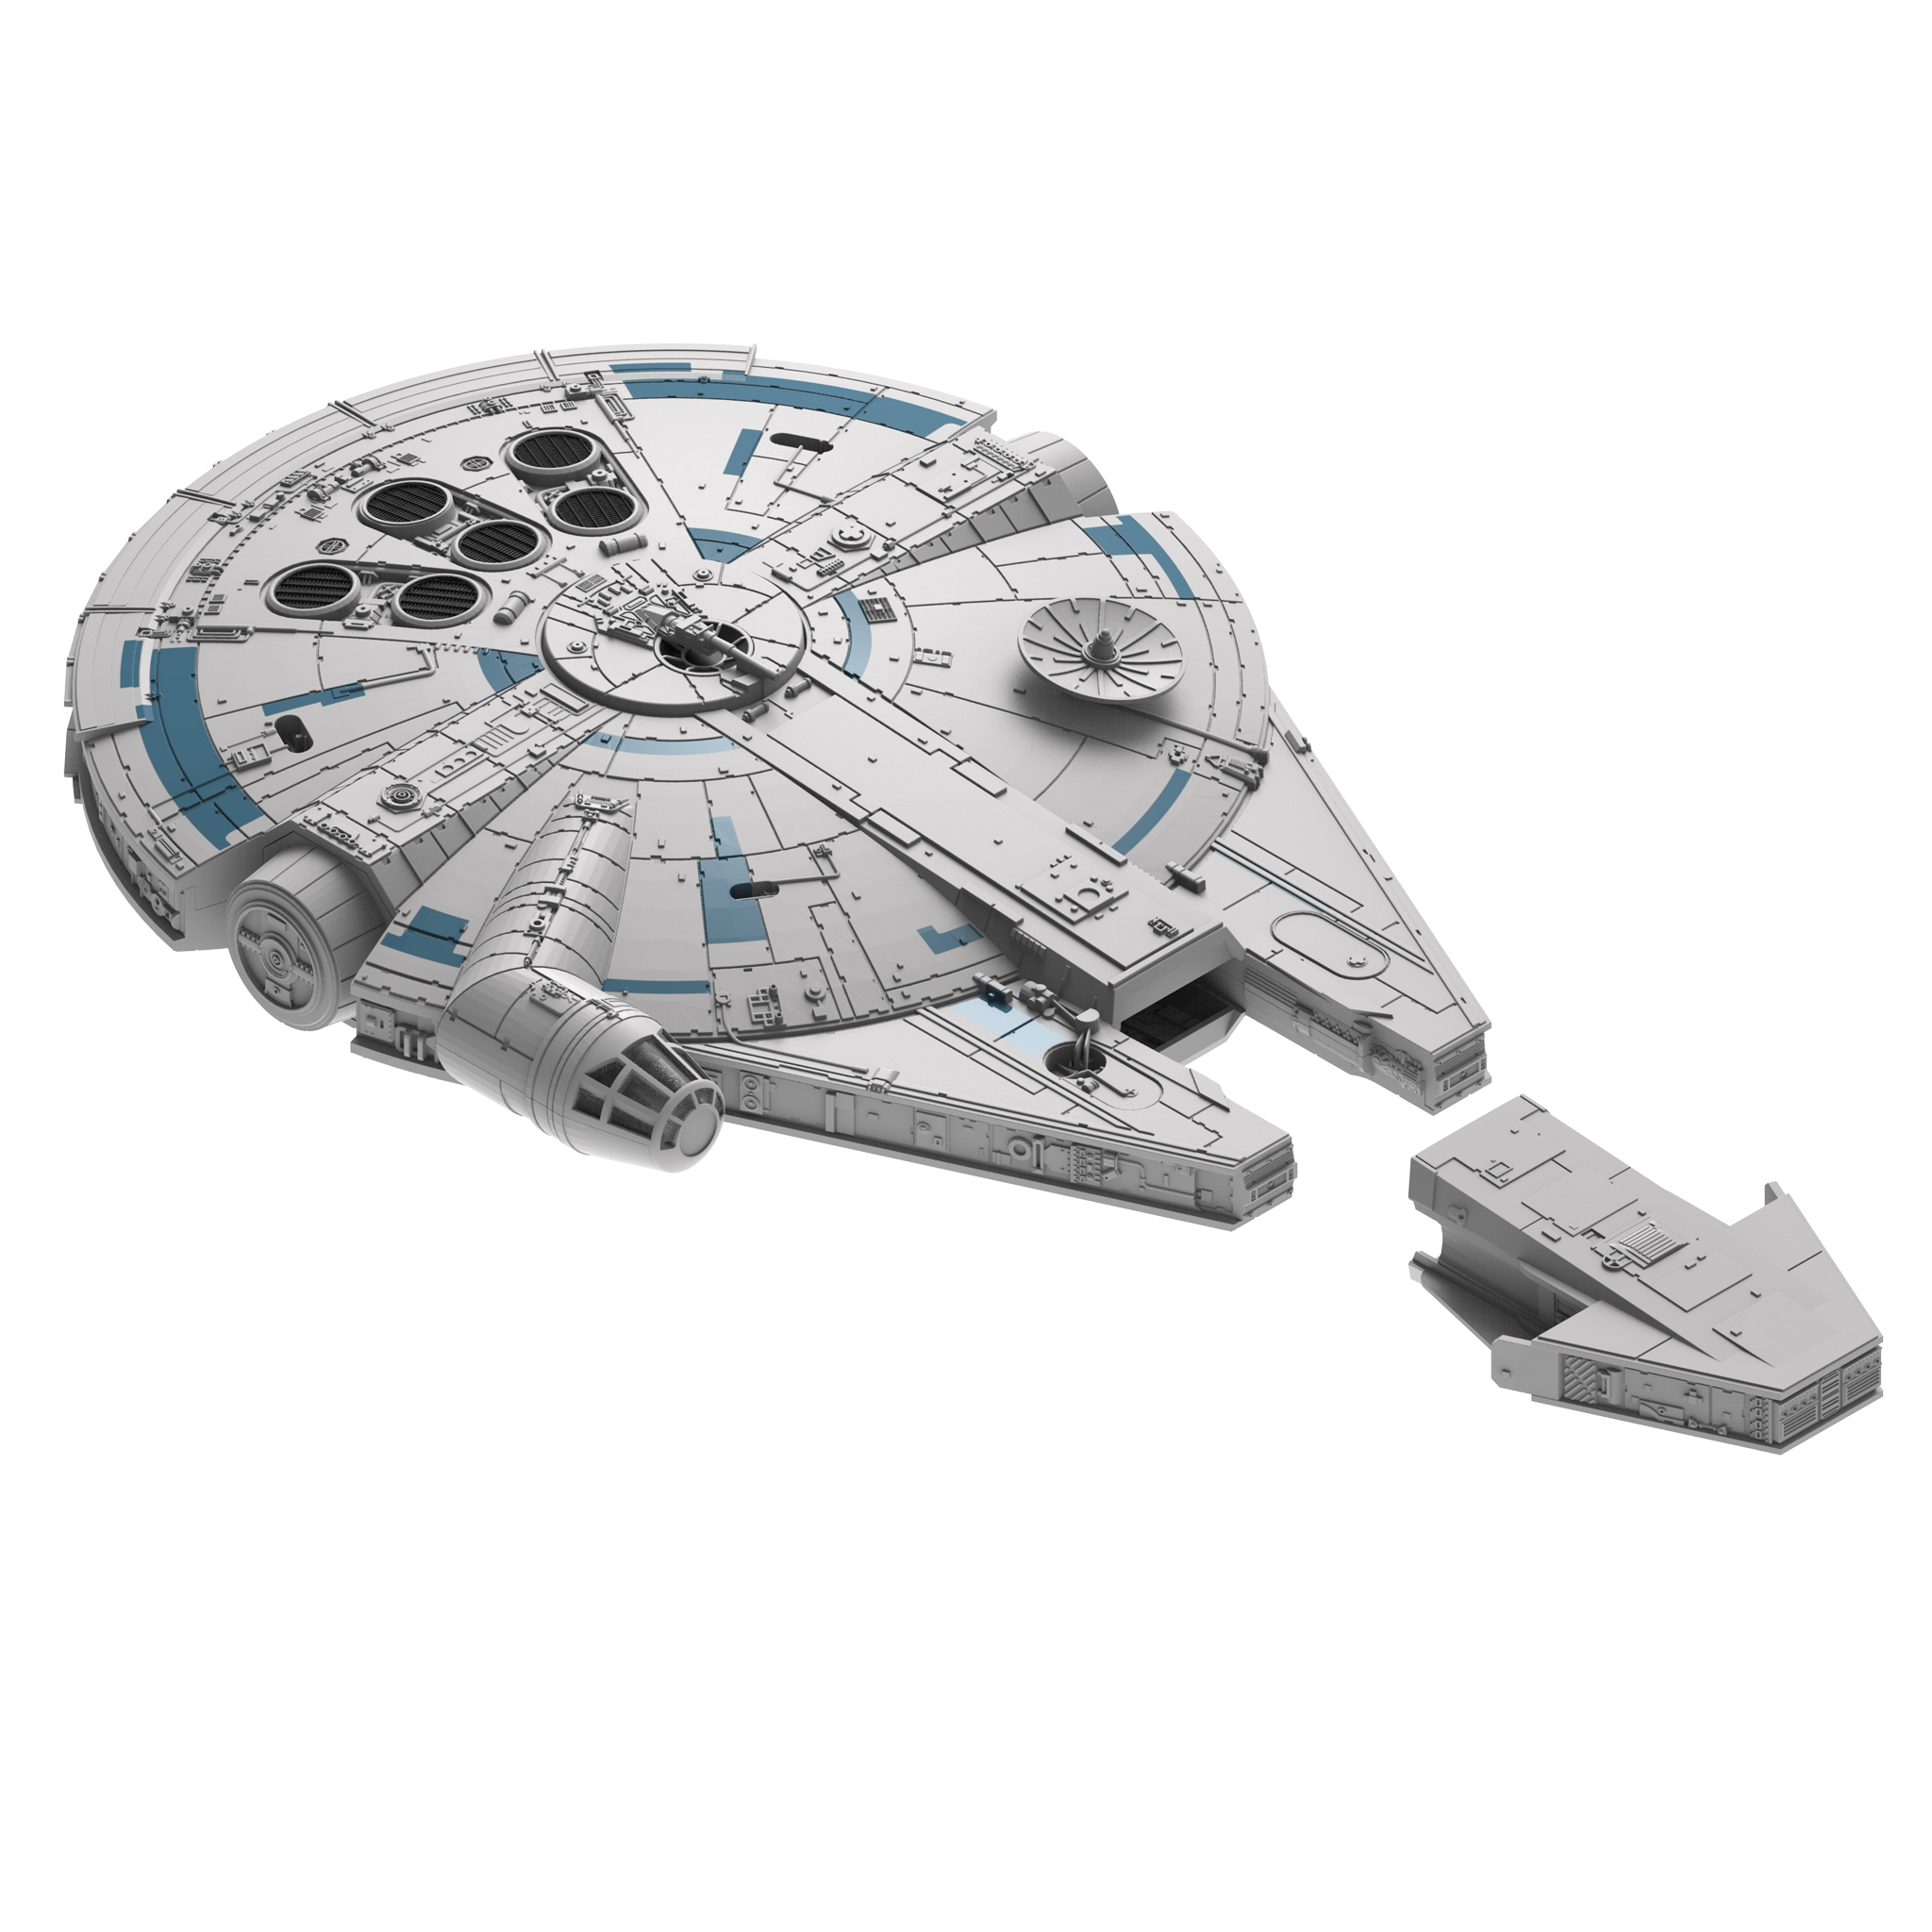 Diagram Of Millenium Falcon Wiring Diagrams Mtd Lawn Mower Model 37448a Solo A Star Wars Story Revell Kits Coming Soon Outline The